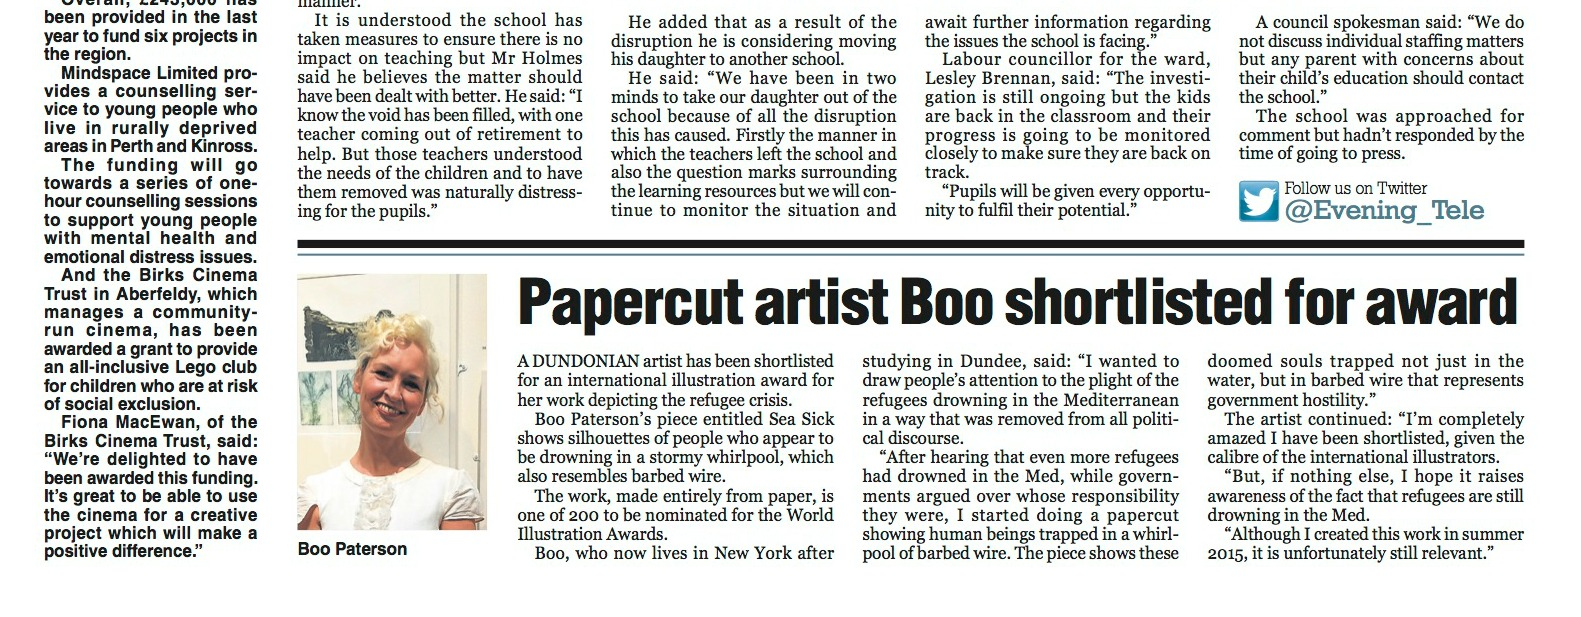 News story in The Evening Telegraph about Boo Paterson's nomination in World Illustration Awards